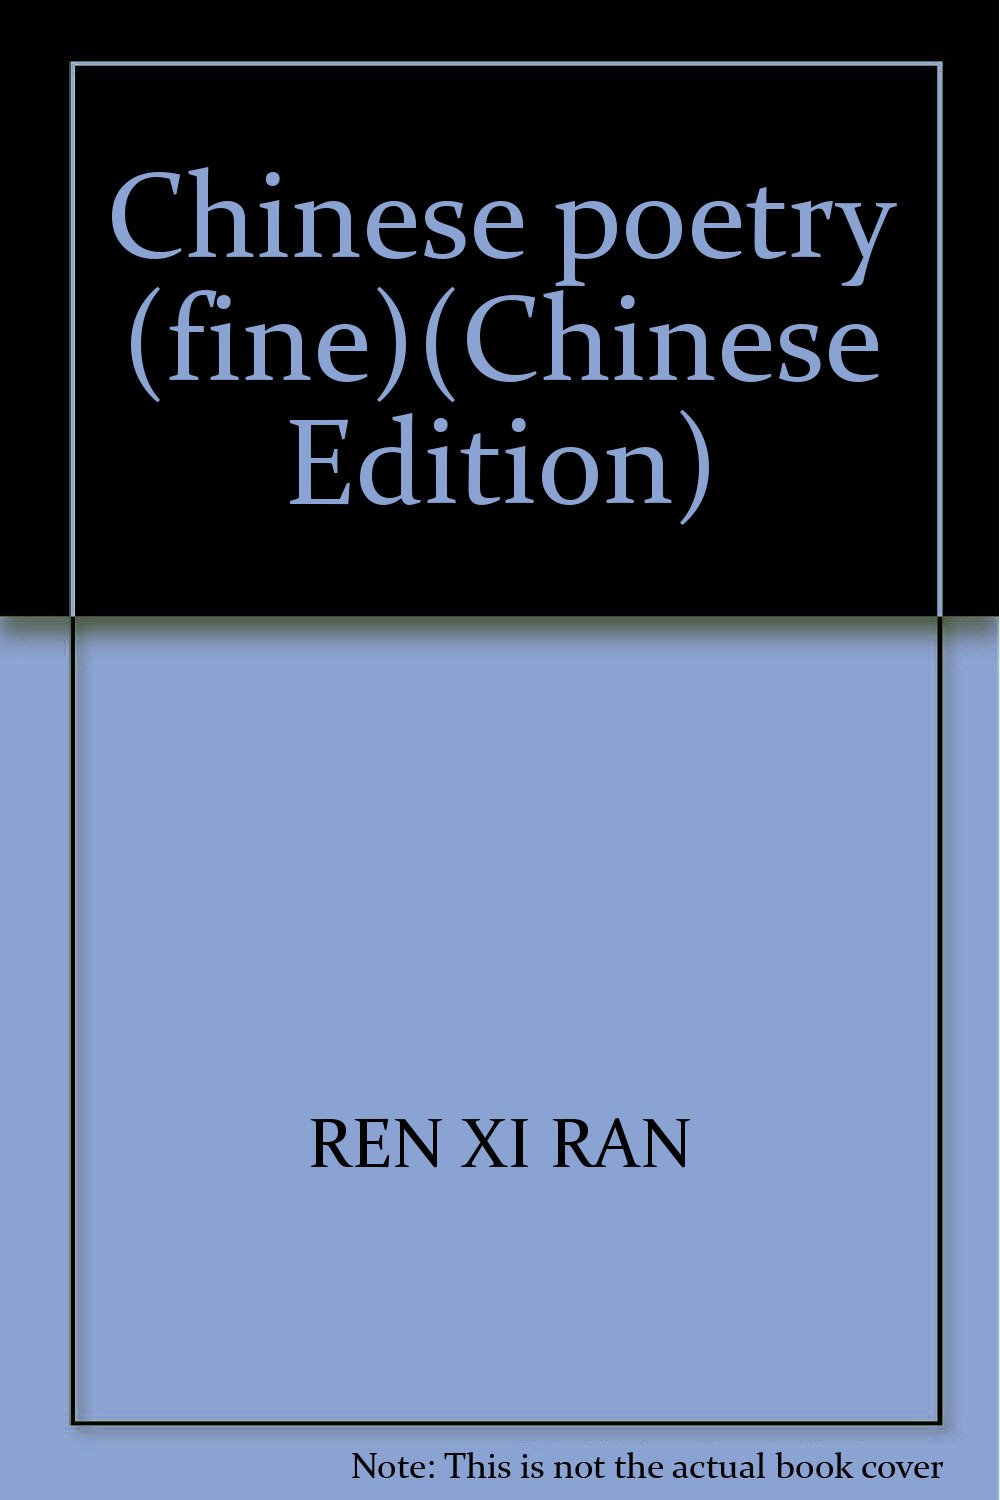 Chinese poetry (fine)(Chinese Edition) ebook